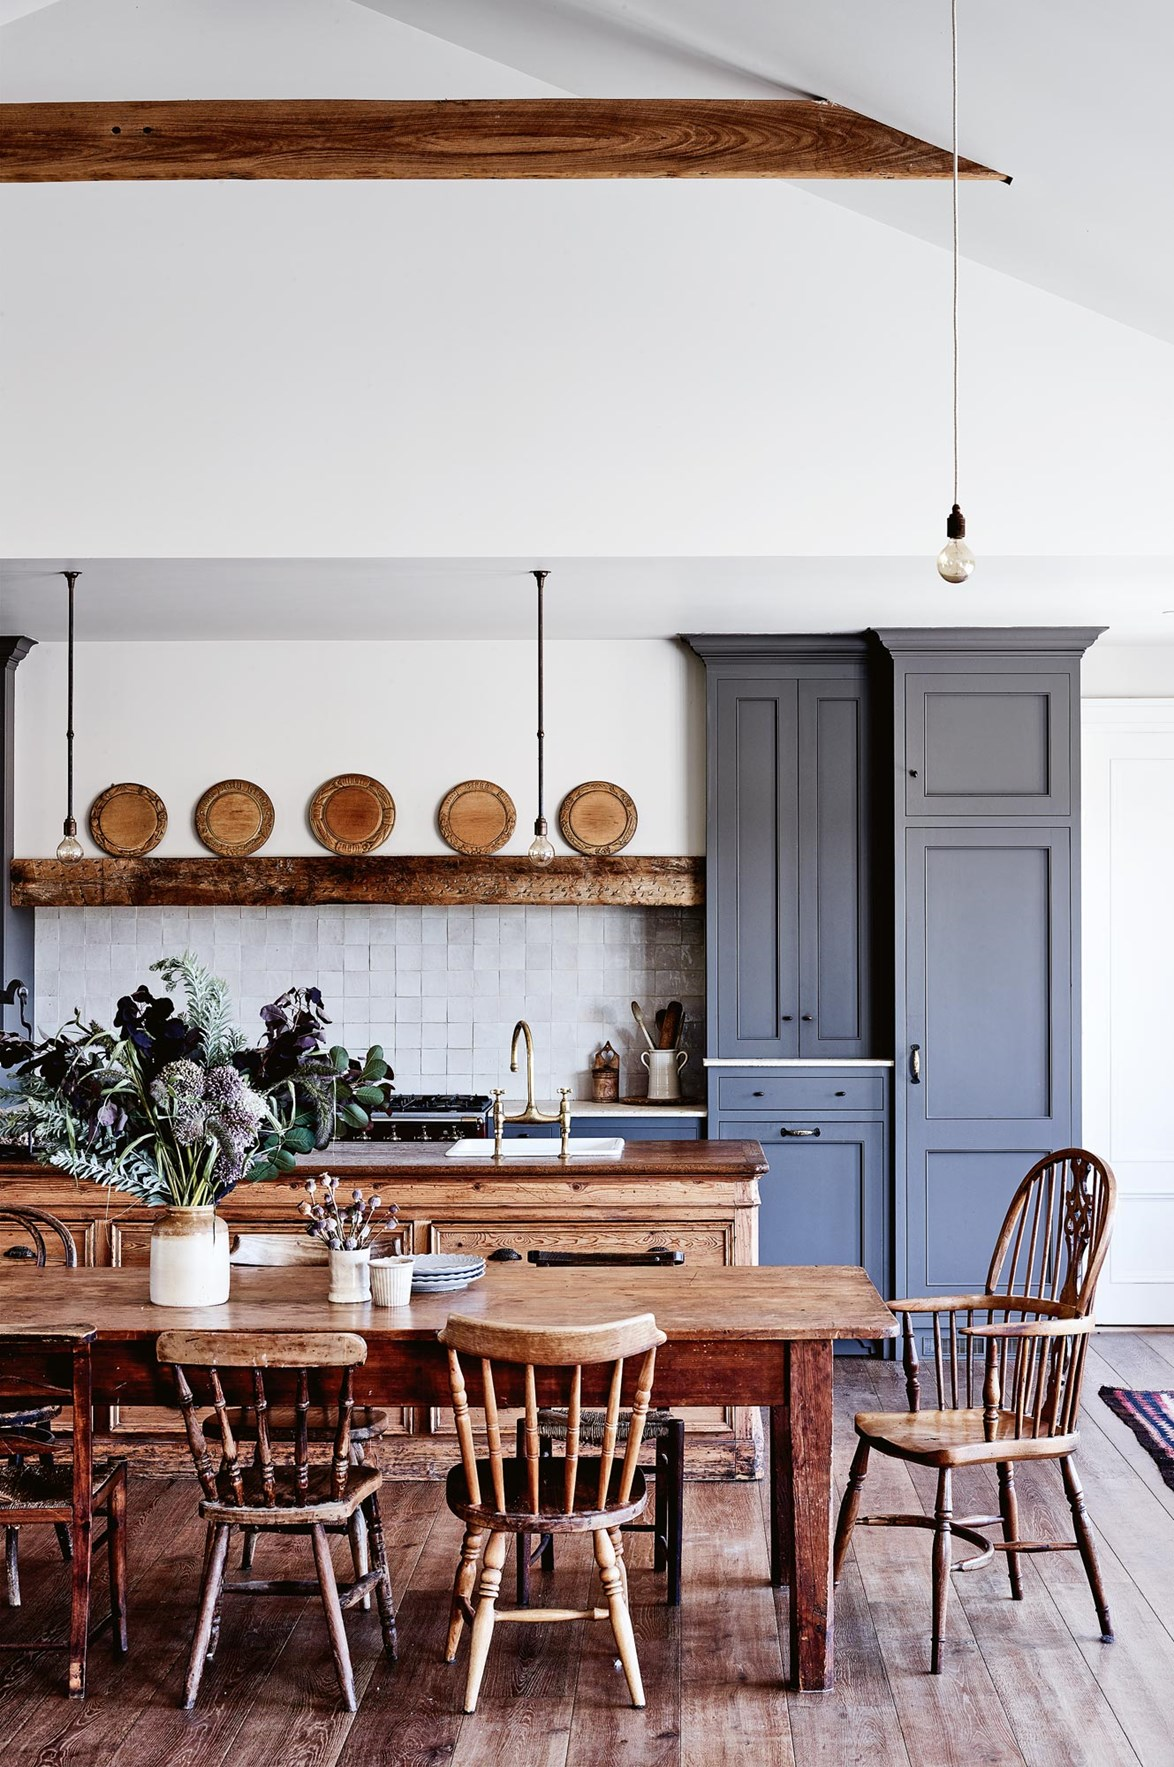 A worn-timber island and vases of fresh flowers adds to the rustic country feel of this kitchen.